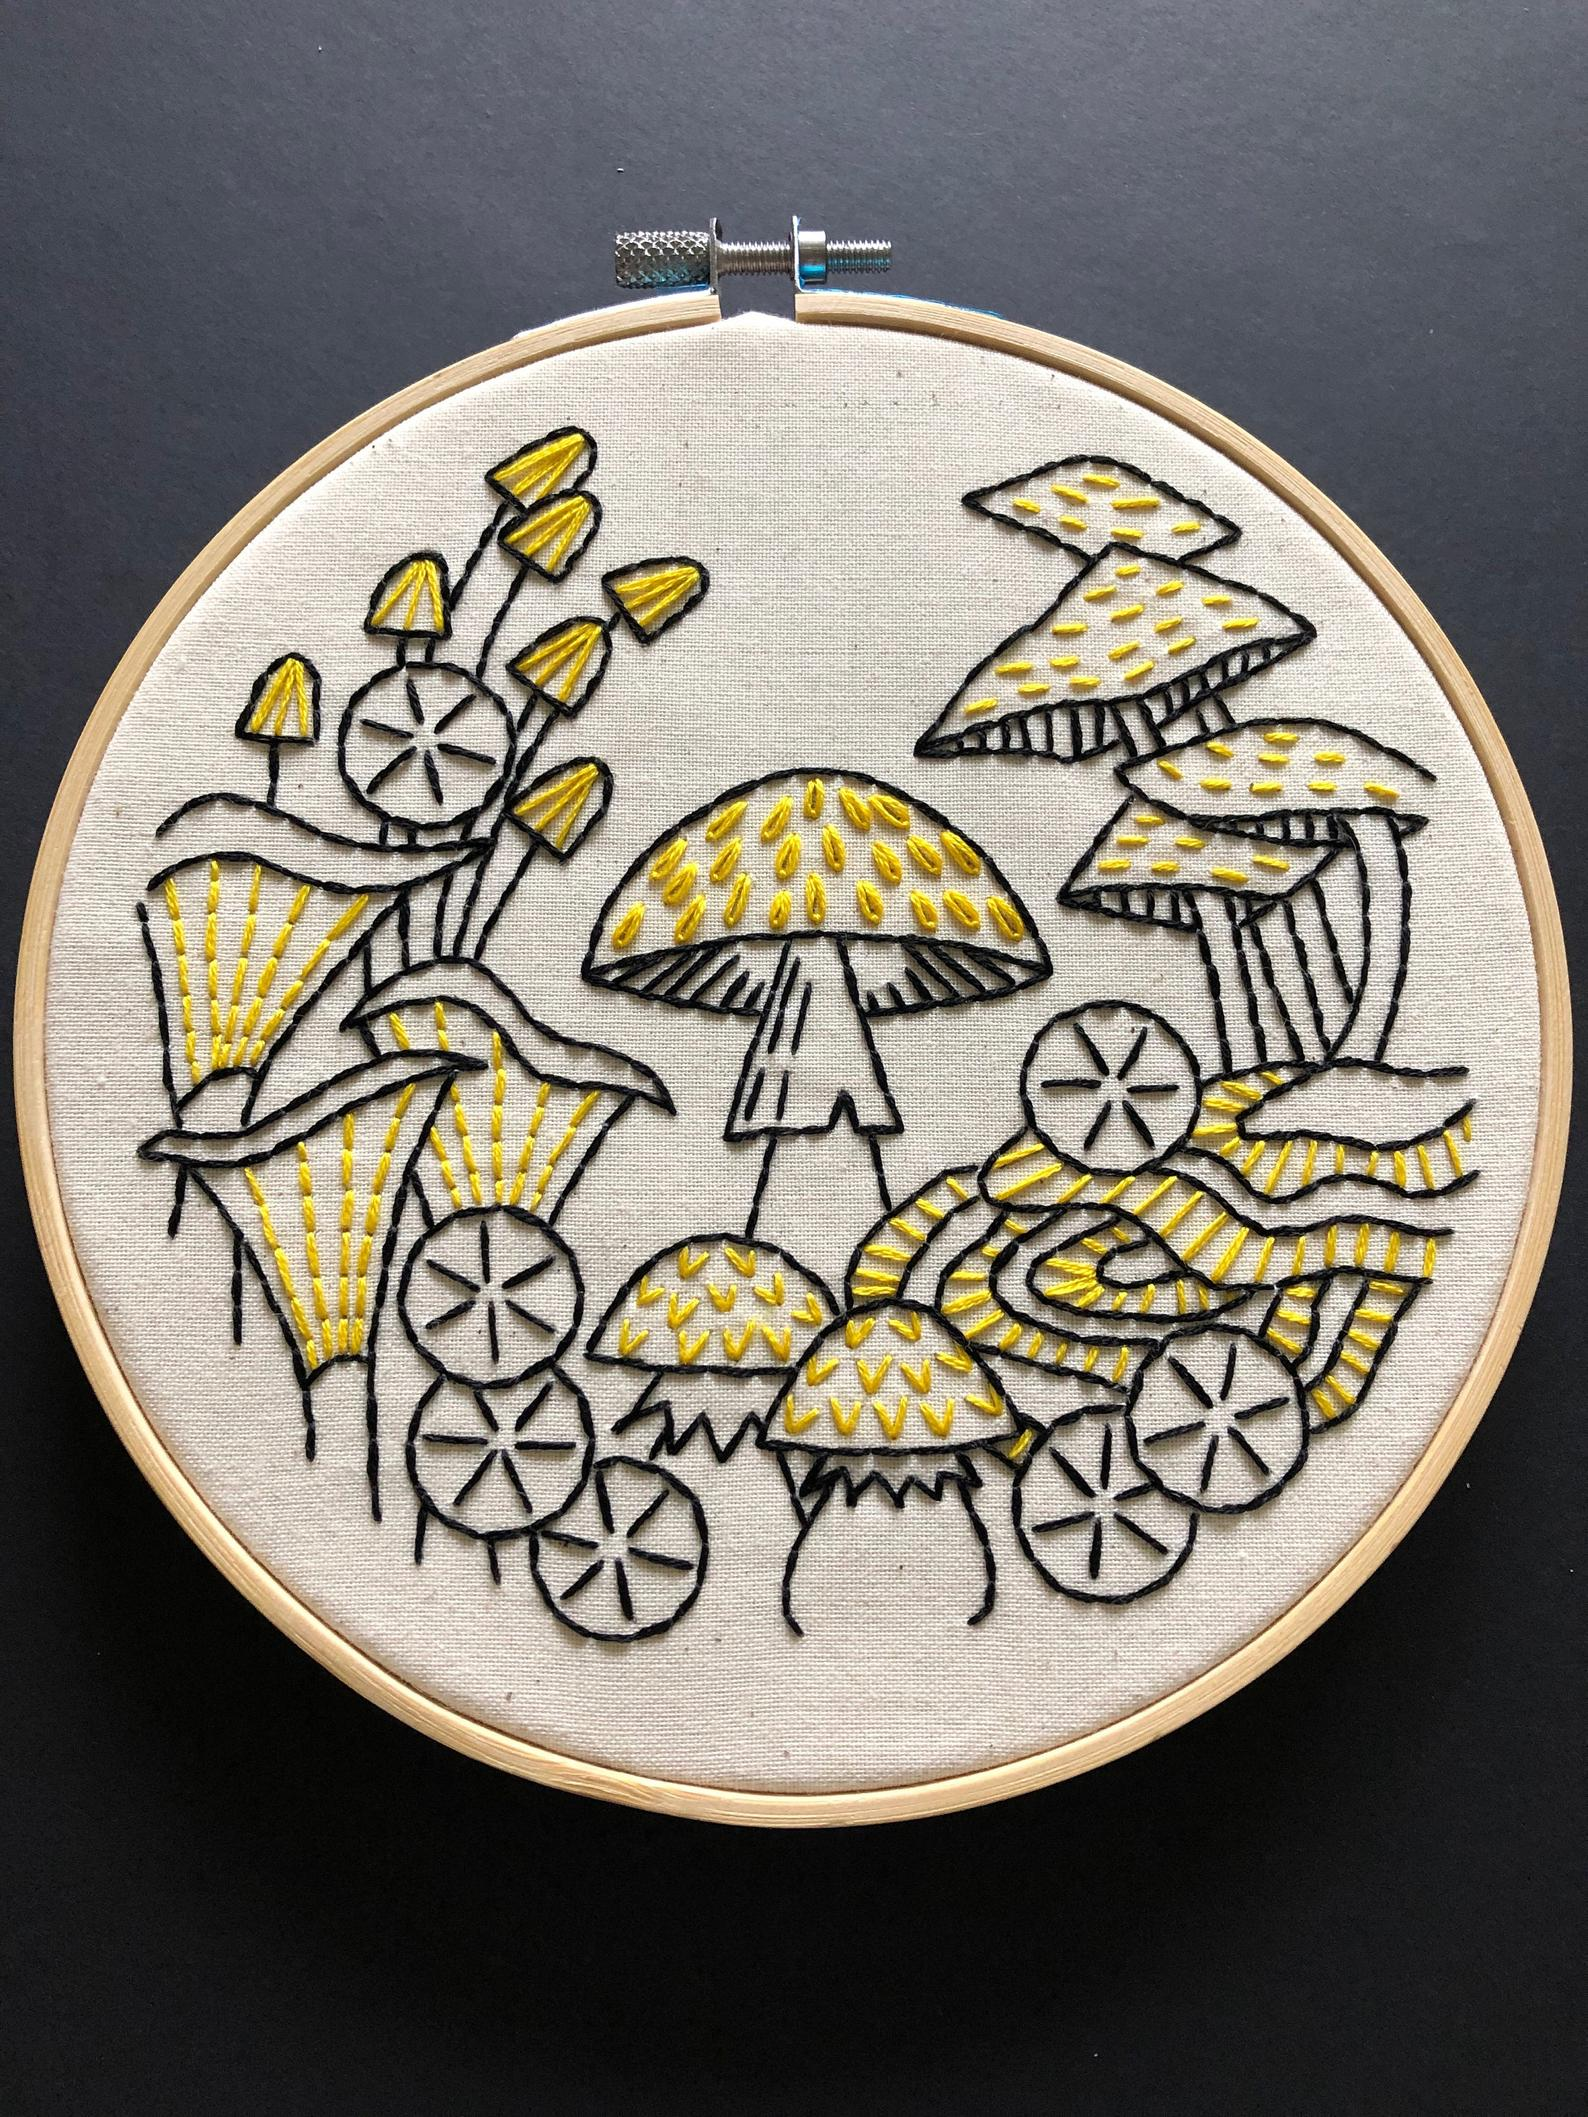 fungi embroidery kit